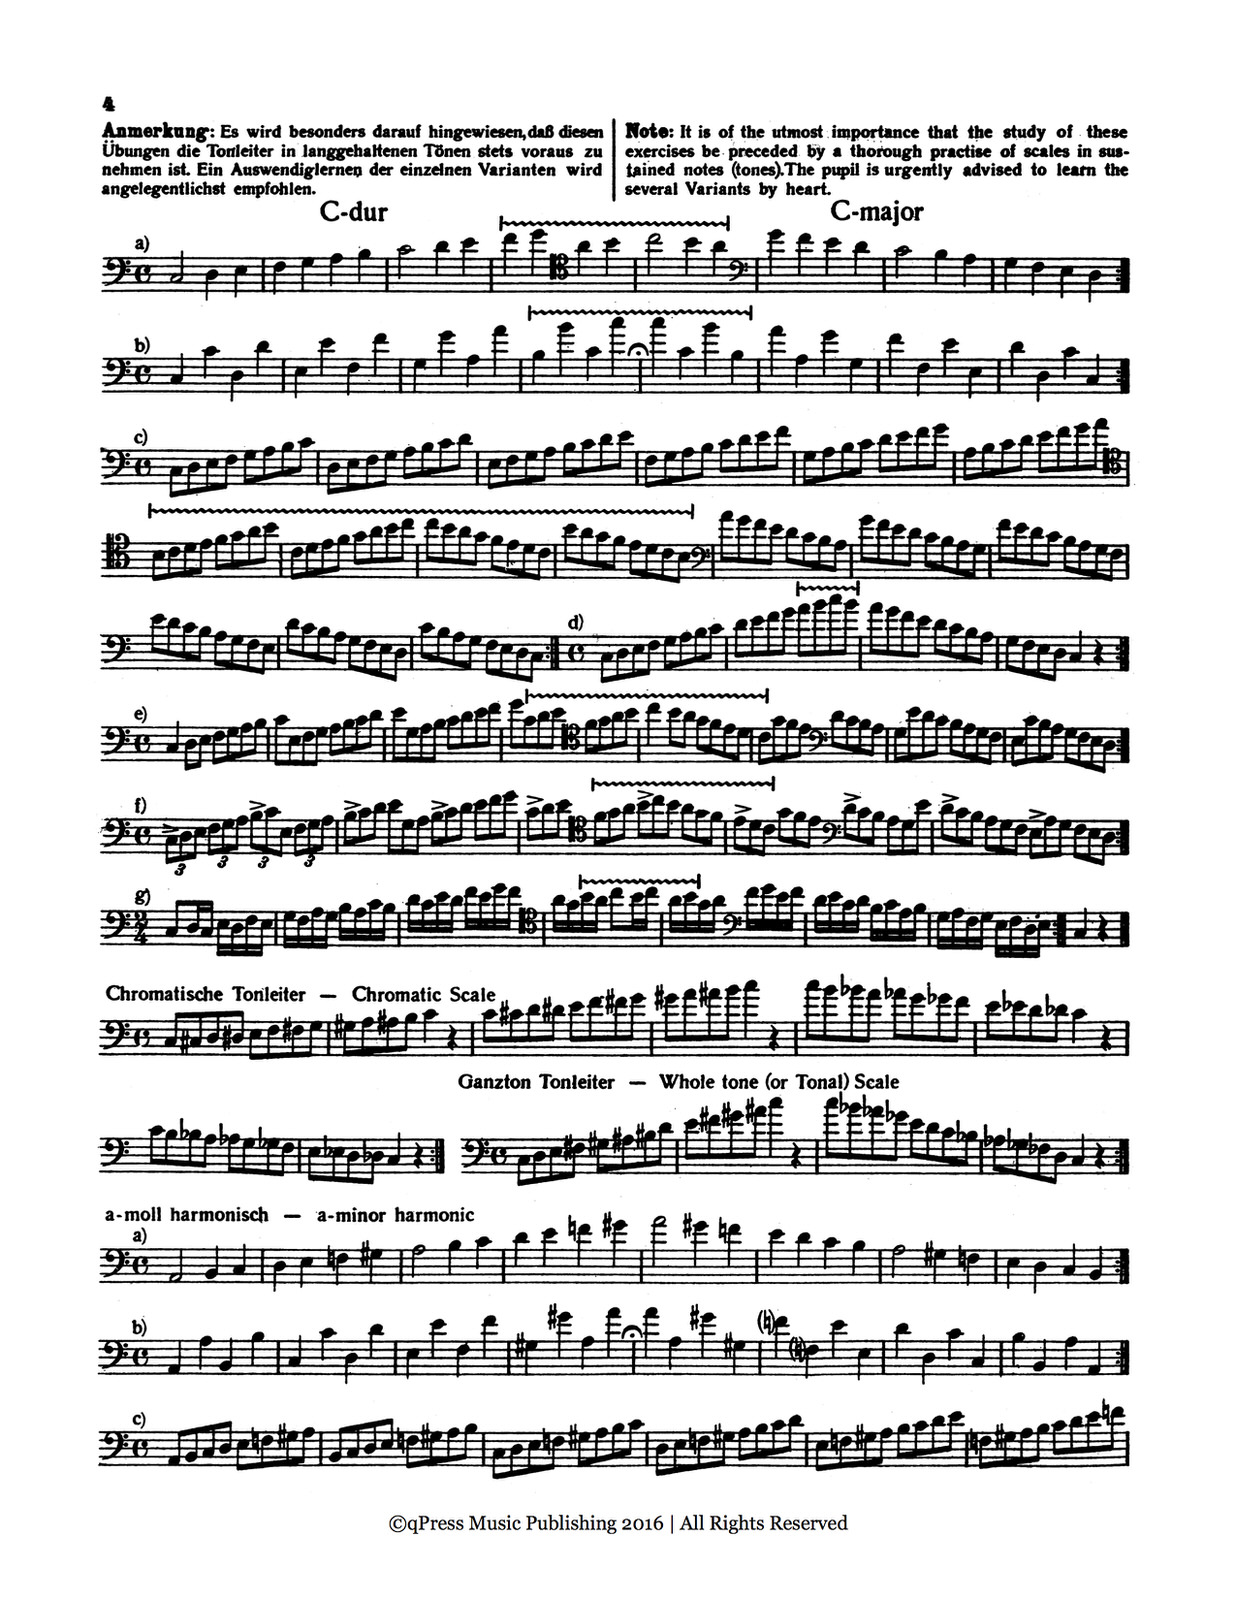 gaetke-studies-in-scales-and-arpeggios-for-trombone-part-1-2